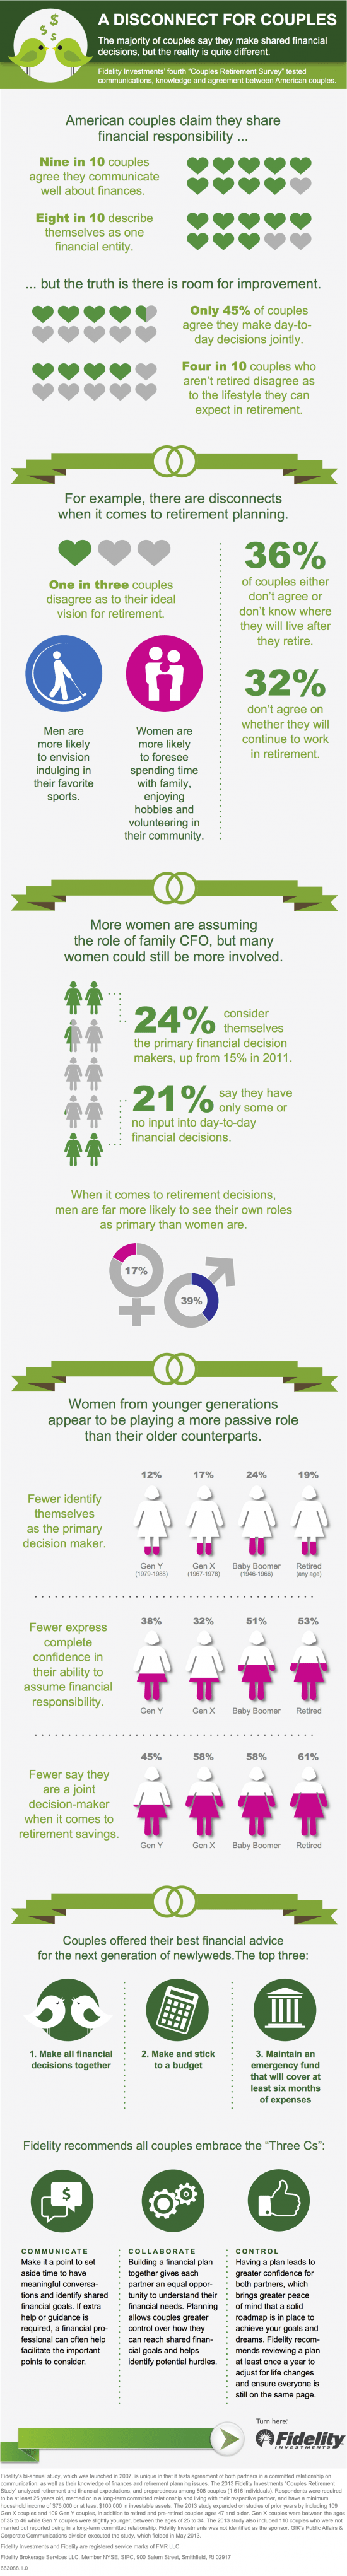 Fidelity Couples Survey Infographic